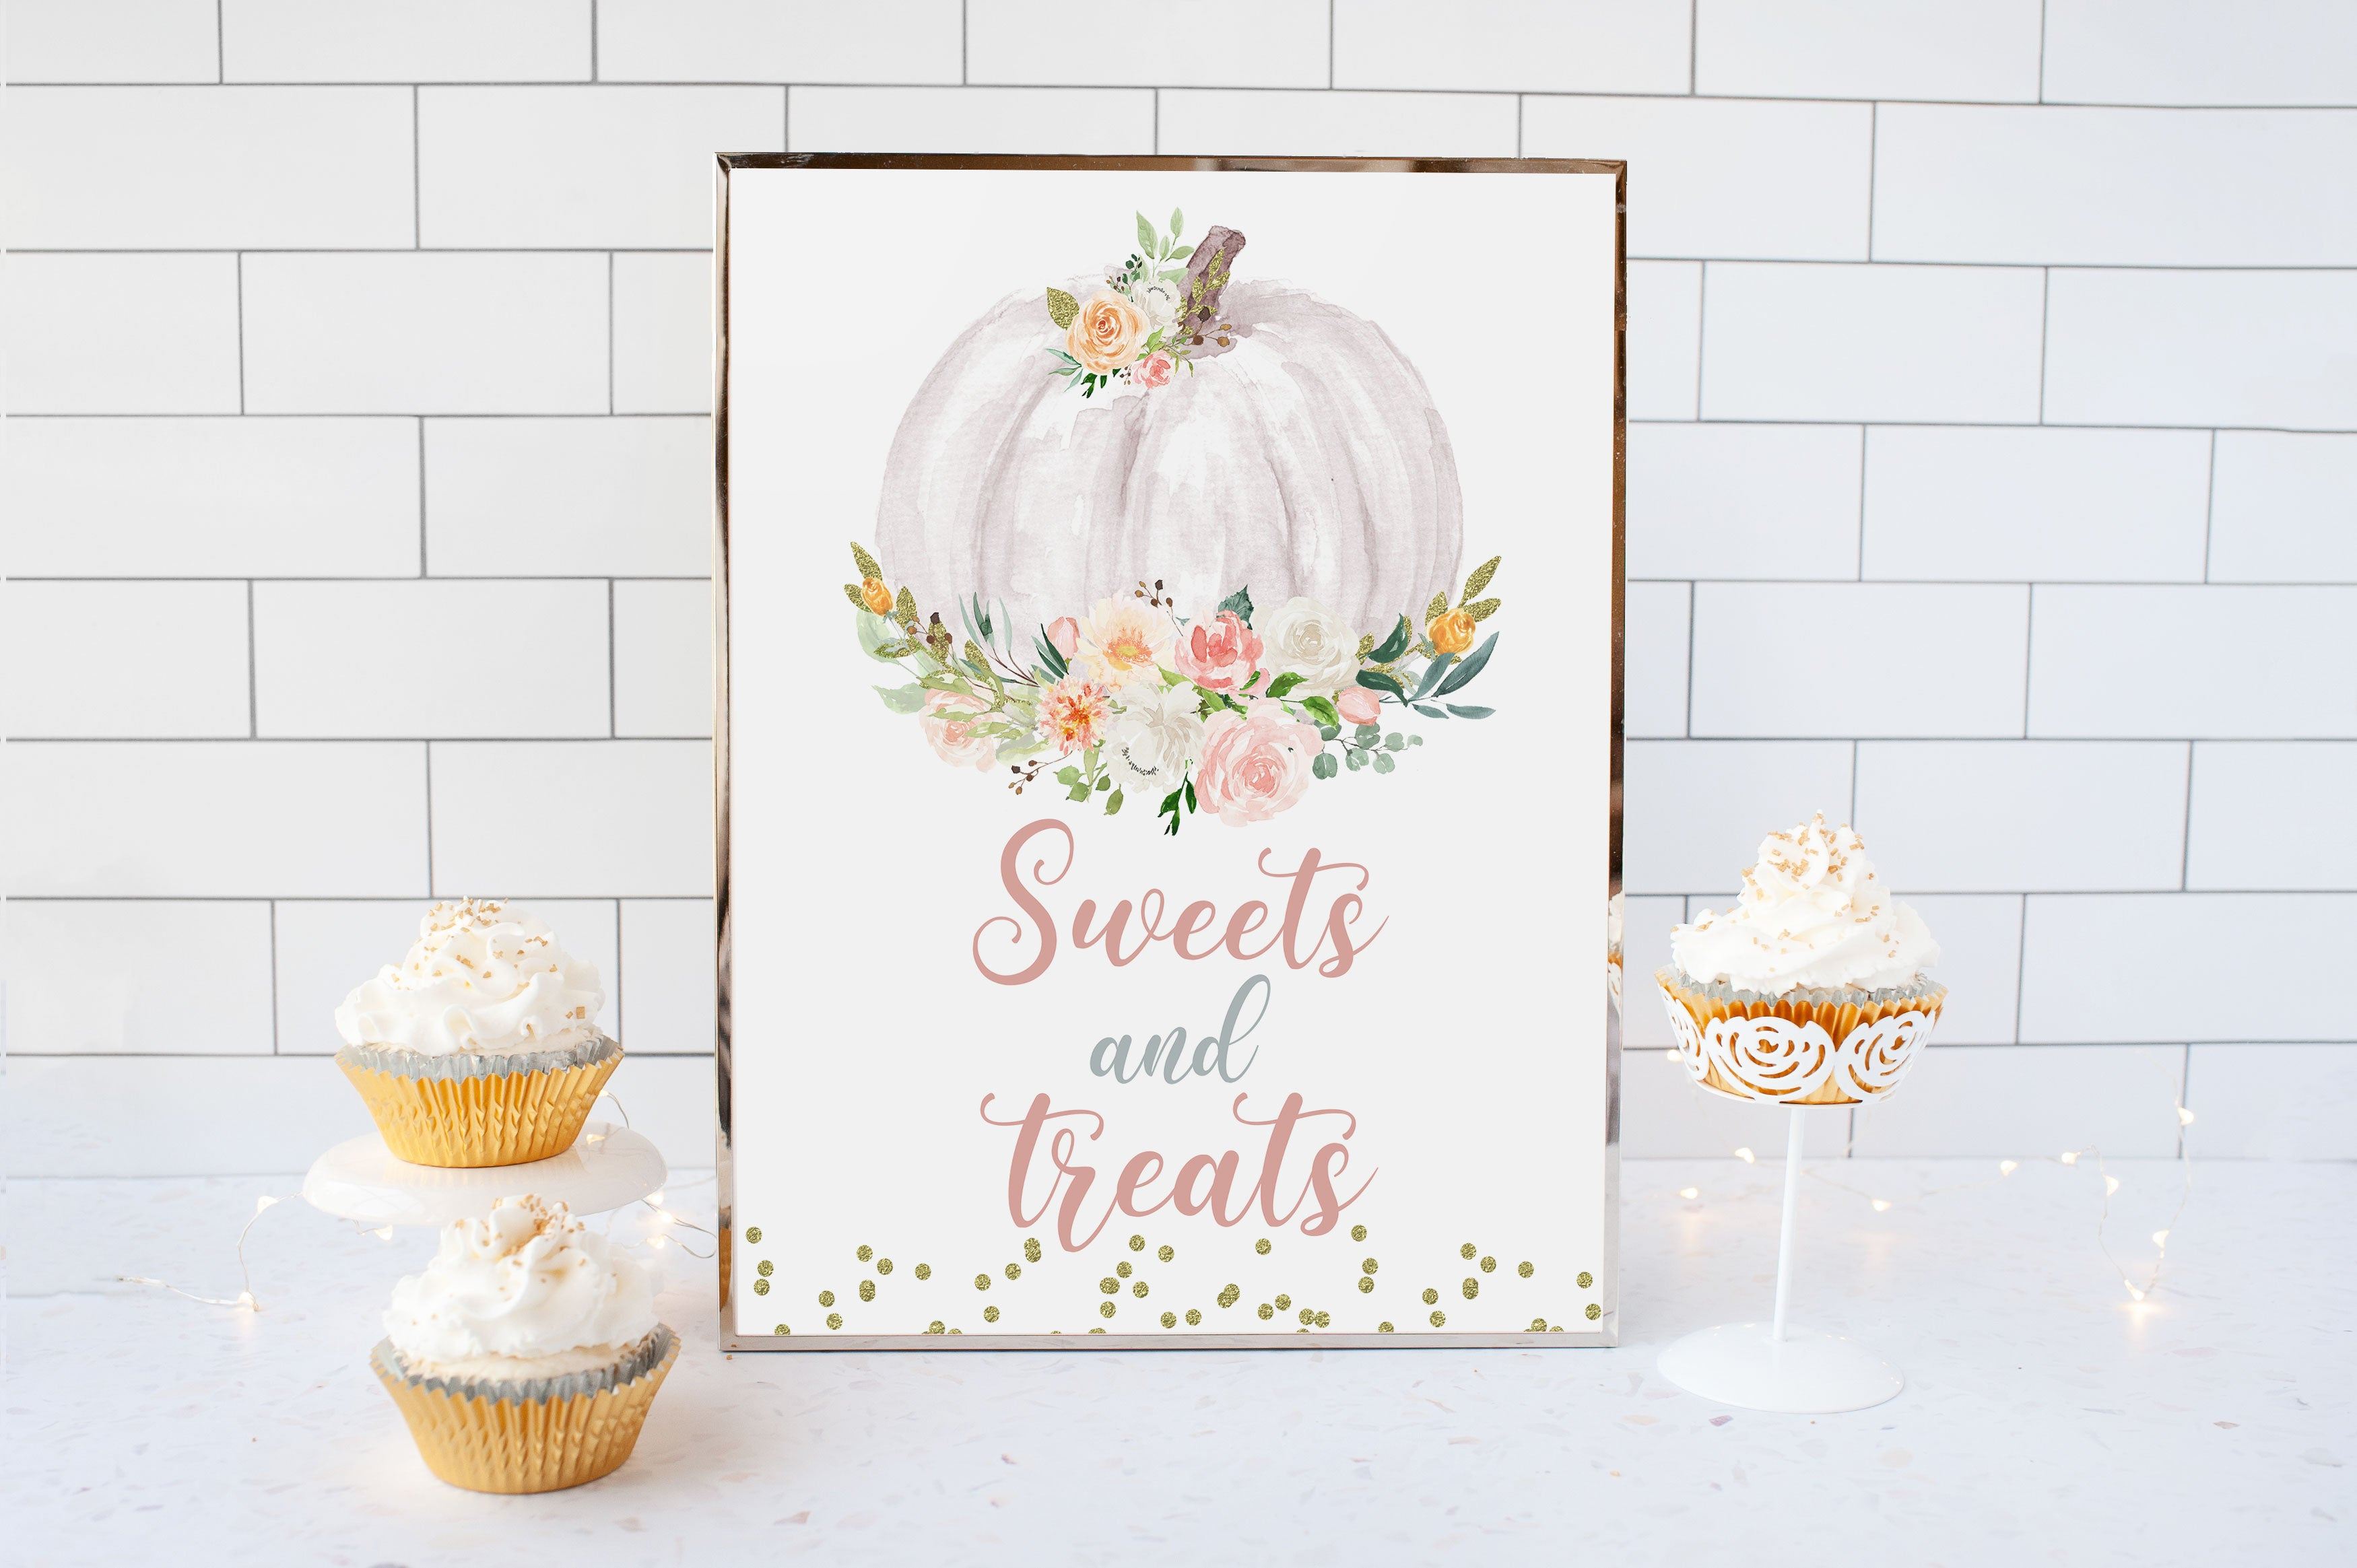 Pumpkin Sweets and Treats Sign Printable | Pumpkin theme Baby Shower Table Decoration - 30H